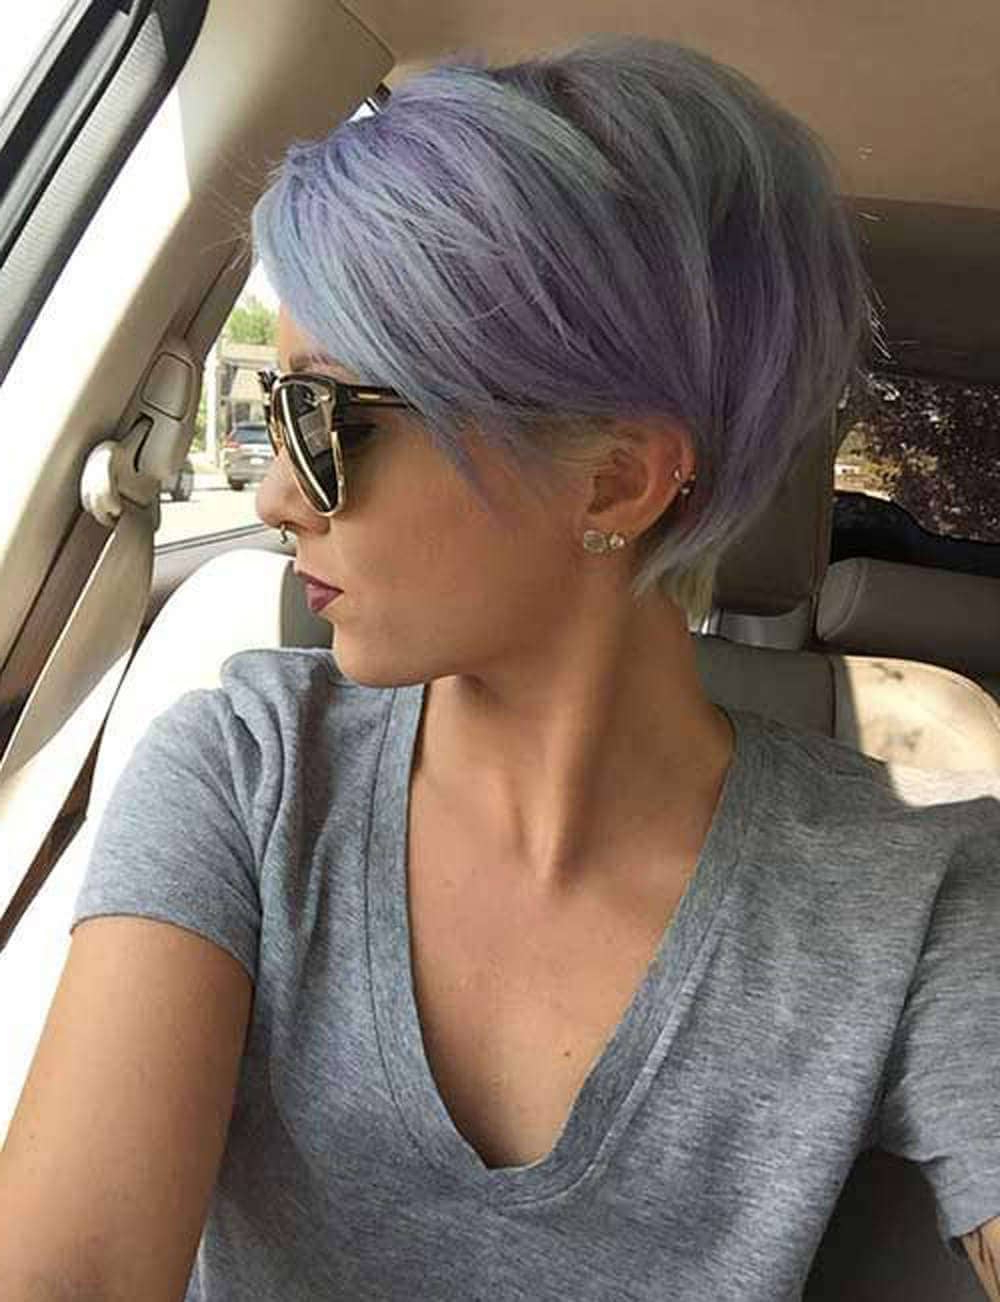 50 Pixie Haircuts You'll See Trending In 2018 With Choppy Pixie Hairstyles With Tapered Nape (View 14 of 20)